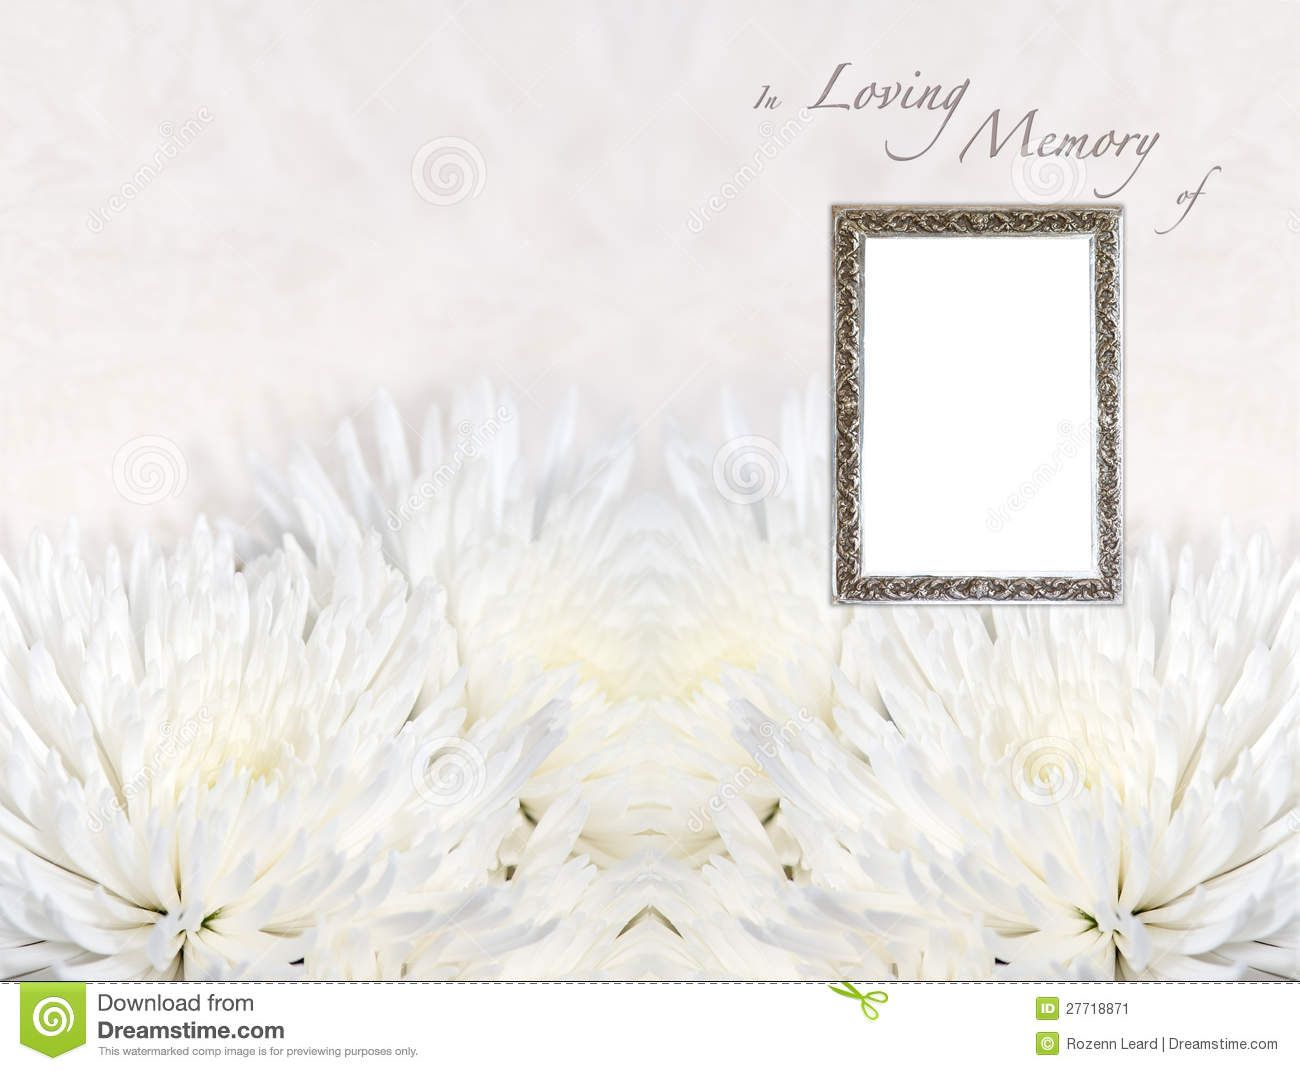 005 Rare In Loving Memory Powerpoint Template Free High Definition Full